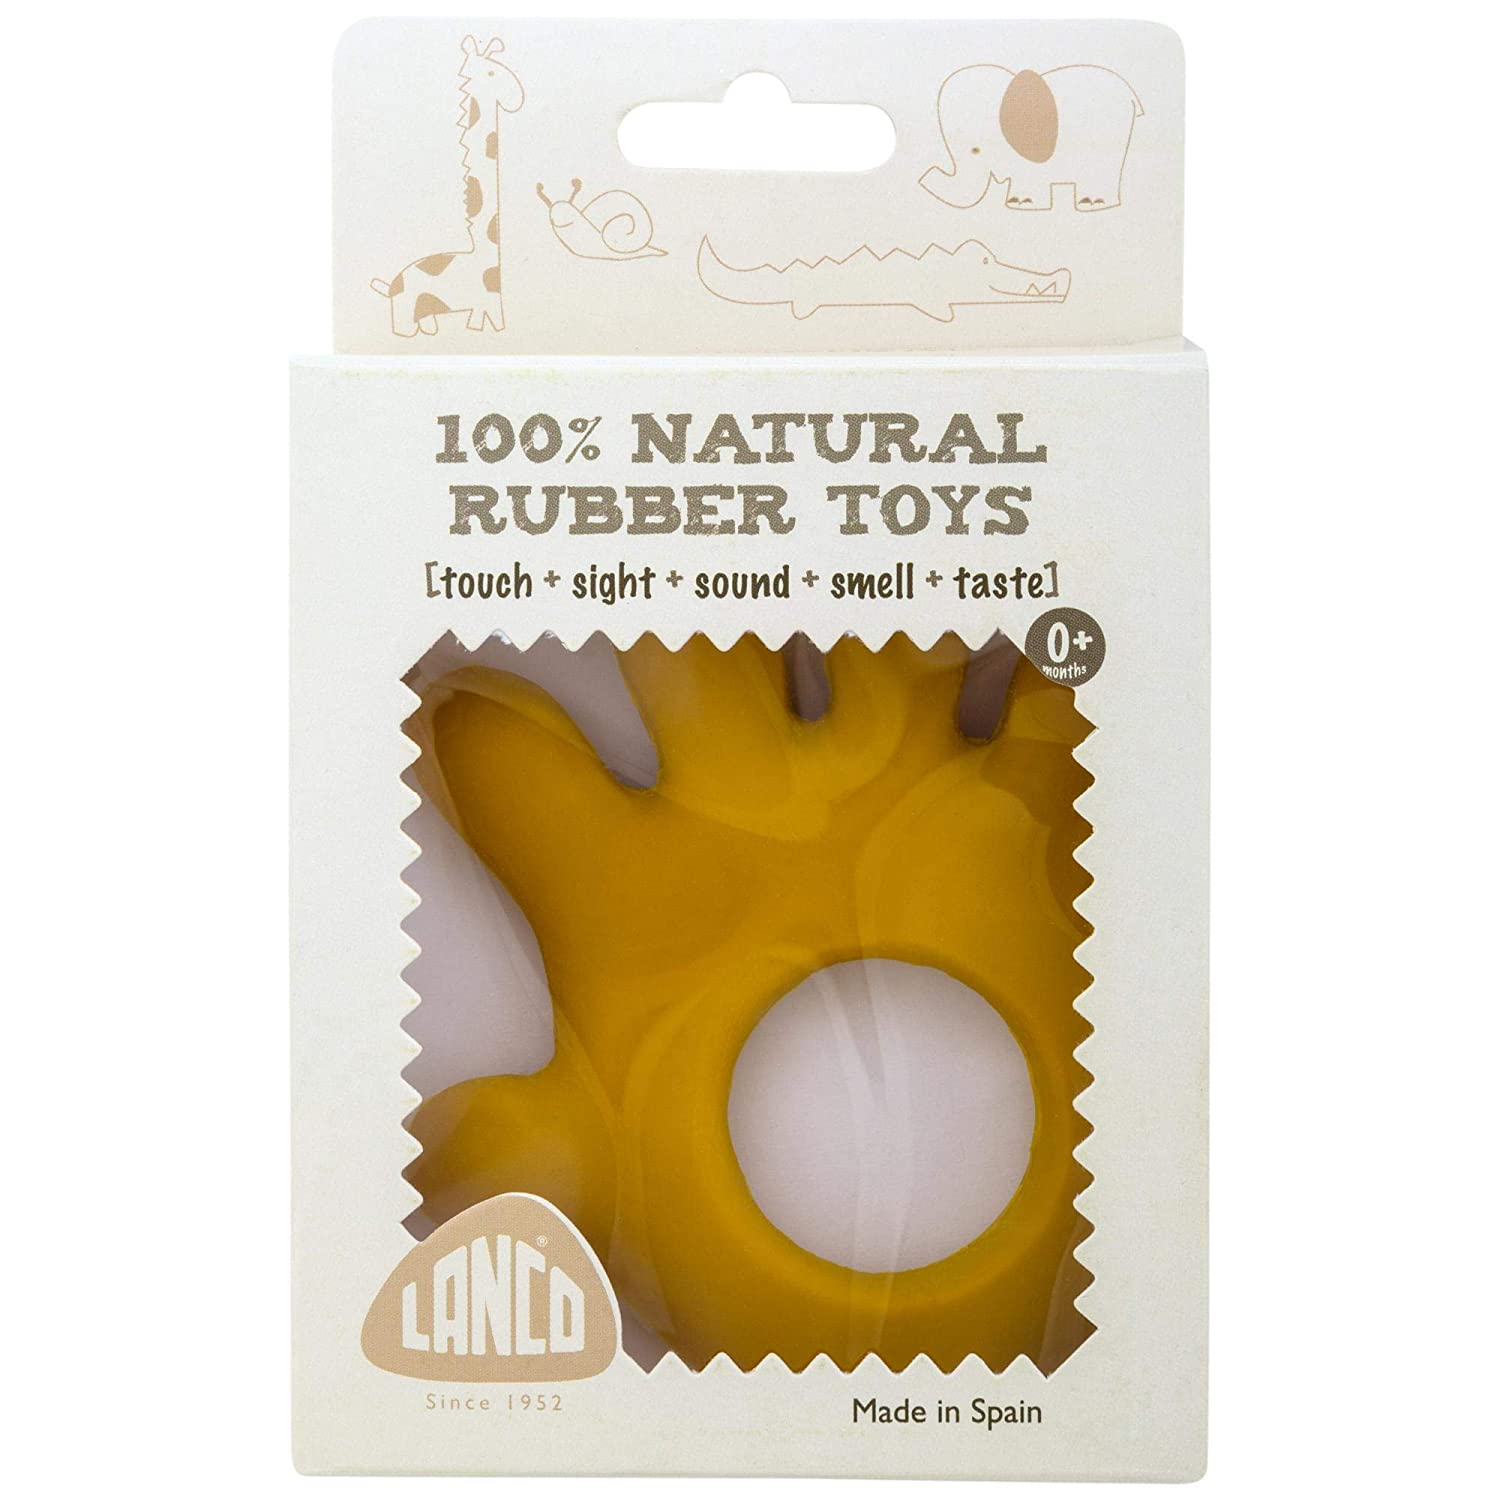 Natural Rubber Safe and Fun for Infants 6 months and Up KidSource 522 Eco-Friendly Baby Teething Toy Lanco Hand Teether No BPA